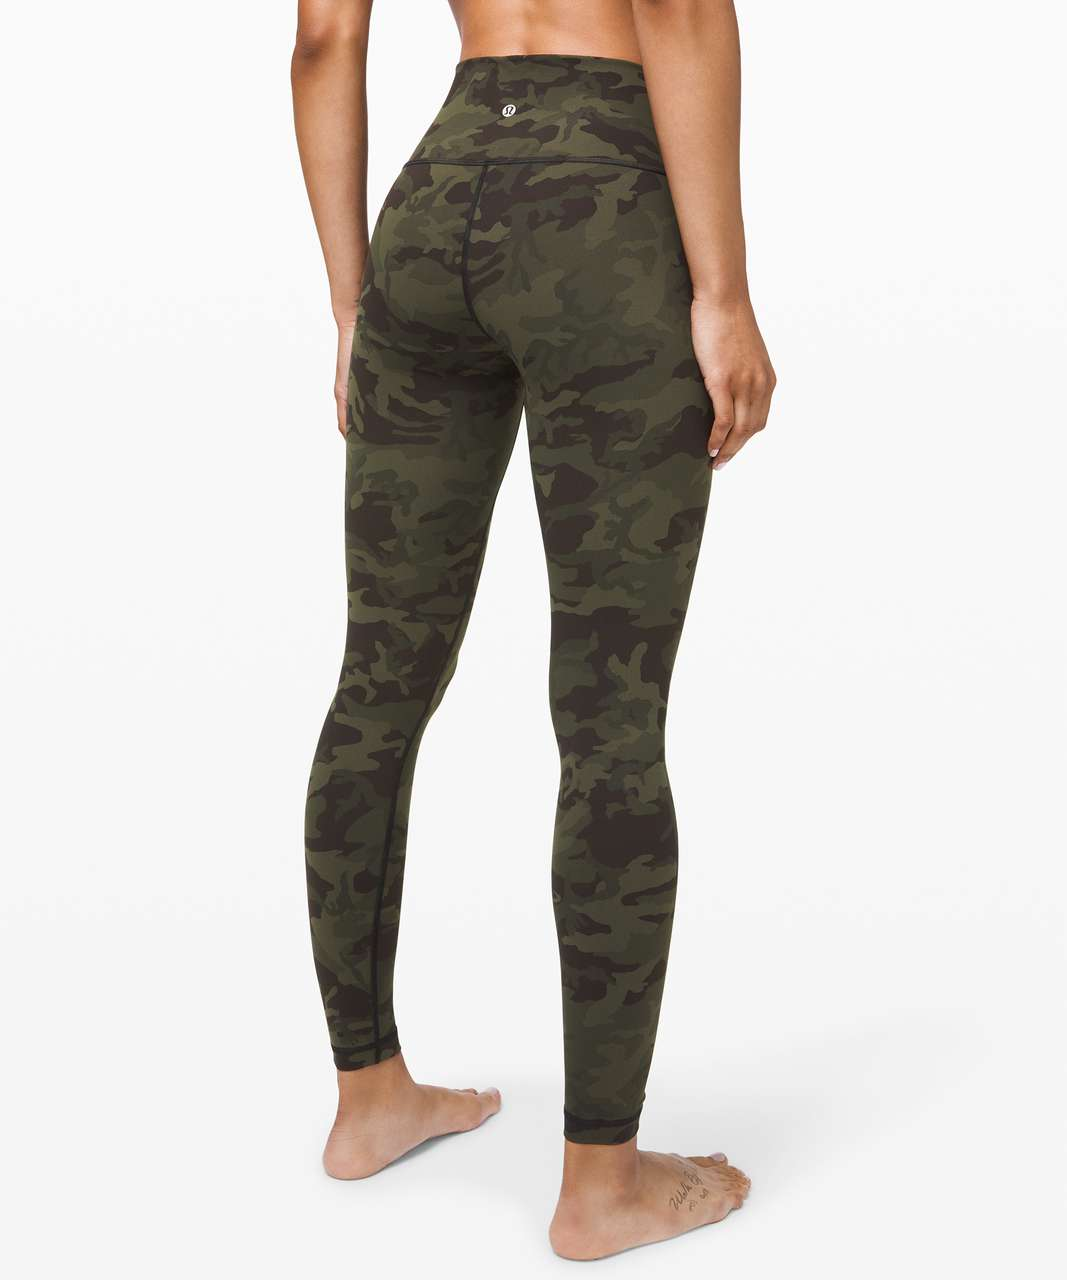 "Lululemon Wunder Under High-Rise Tight 28"" *Full-On Luxtreme - Incognito Camo Multi Gator Green"